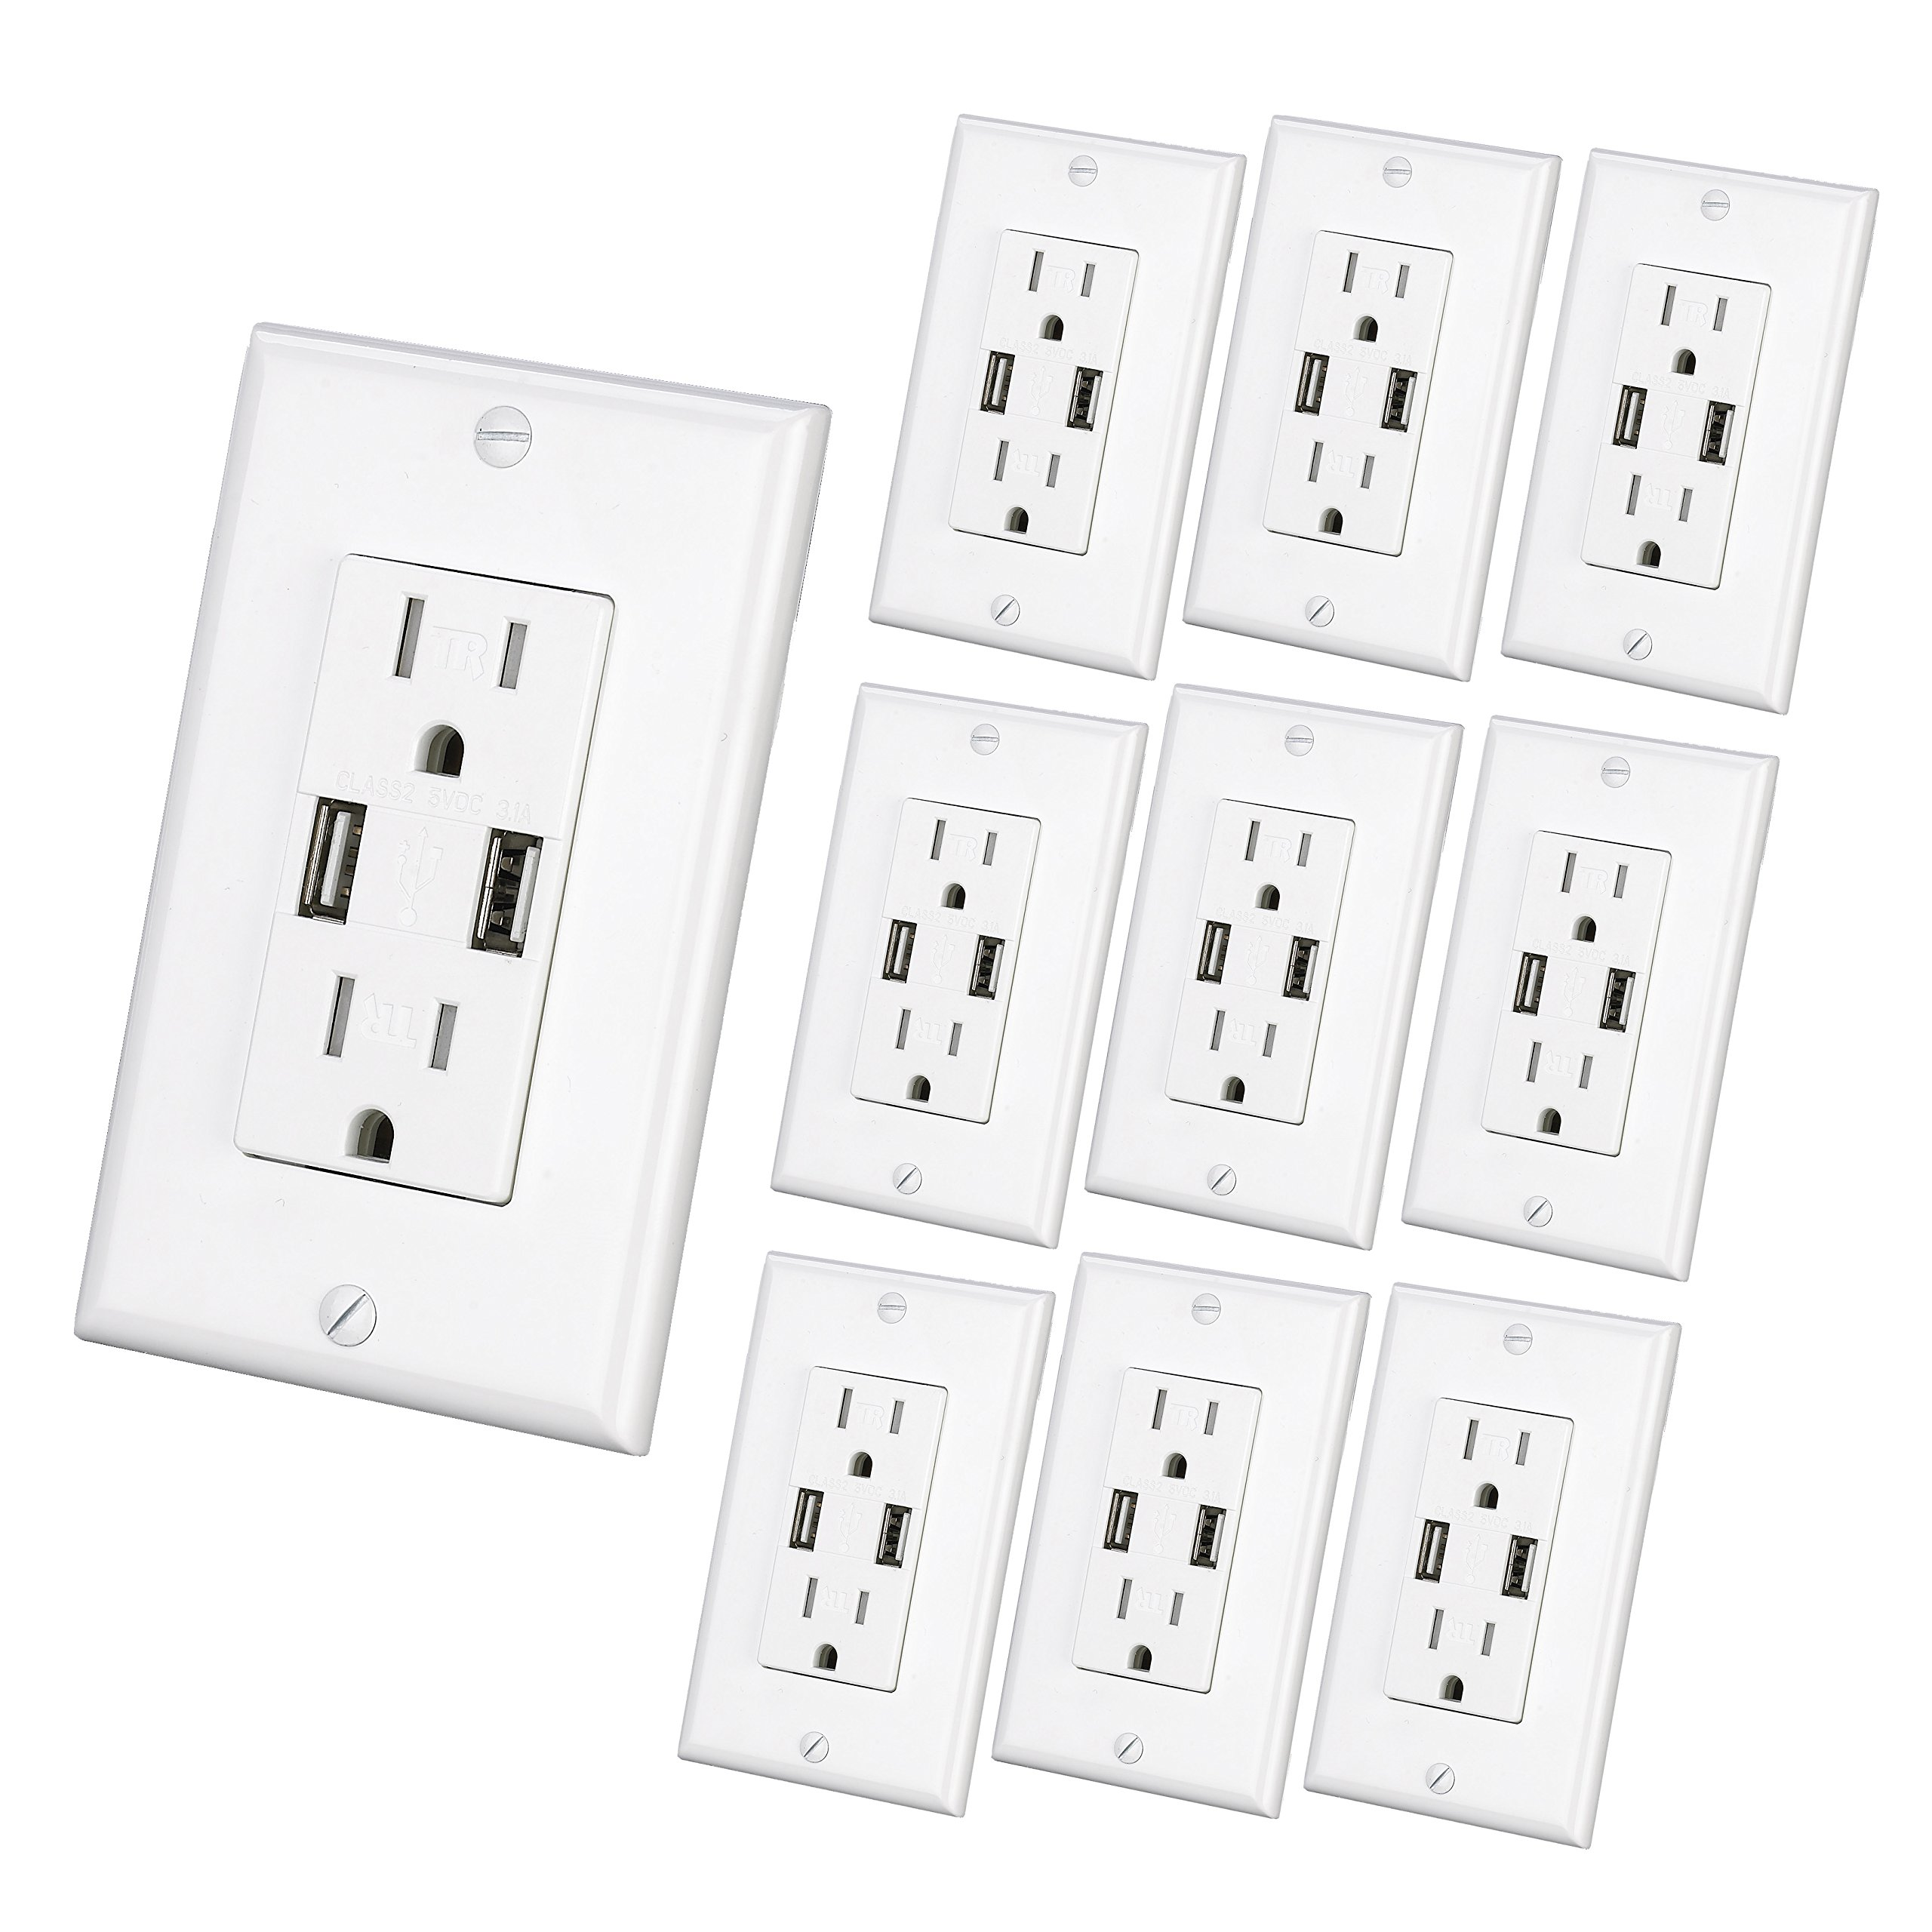 USB Charger Wall Outlet Dual High Speed Duplex Receptacle 15-Amp, Smart 3.1A Quick Charging Capability, Tamper Resistant Outlet Wall plate Included MICMI C10 (White 10pack)